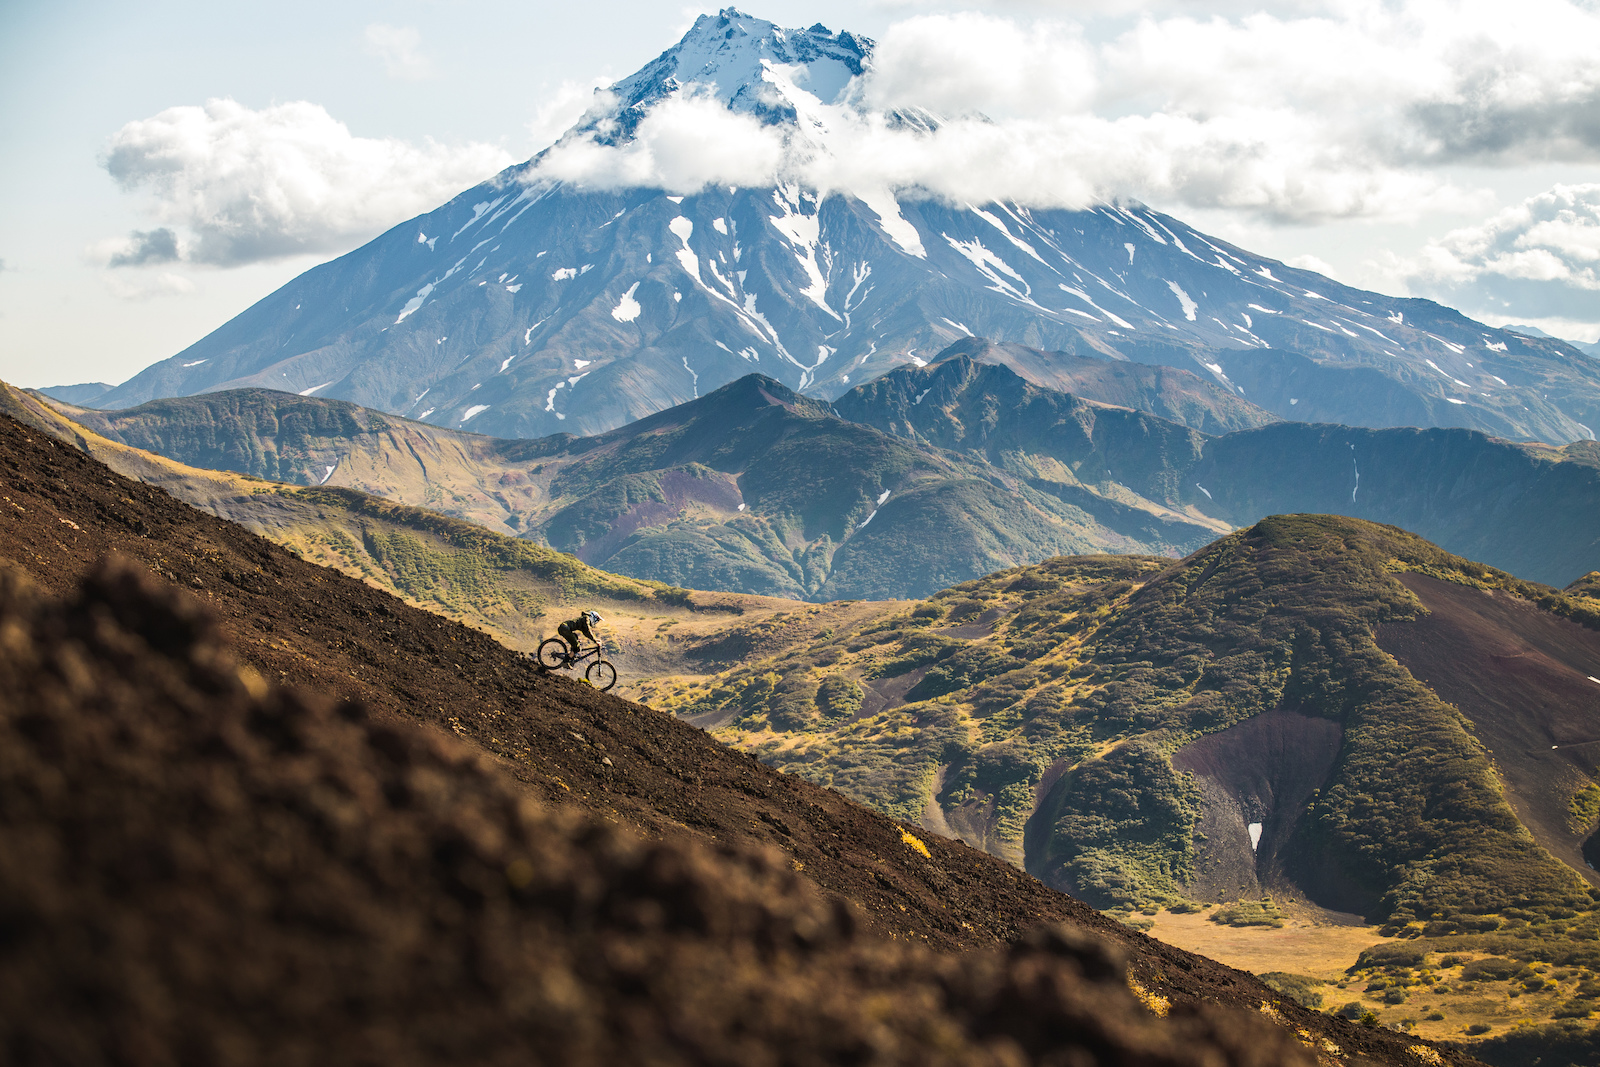 We called this run Lord Of The Rings because we always expected Gandalf or the hobbits coming by in this unreal setting. It took us half a day to get there by car and feet although it was only around 2km distance to our lodge. Kamchatka distances... Photo Constantin Fiene